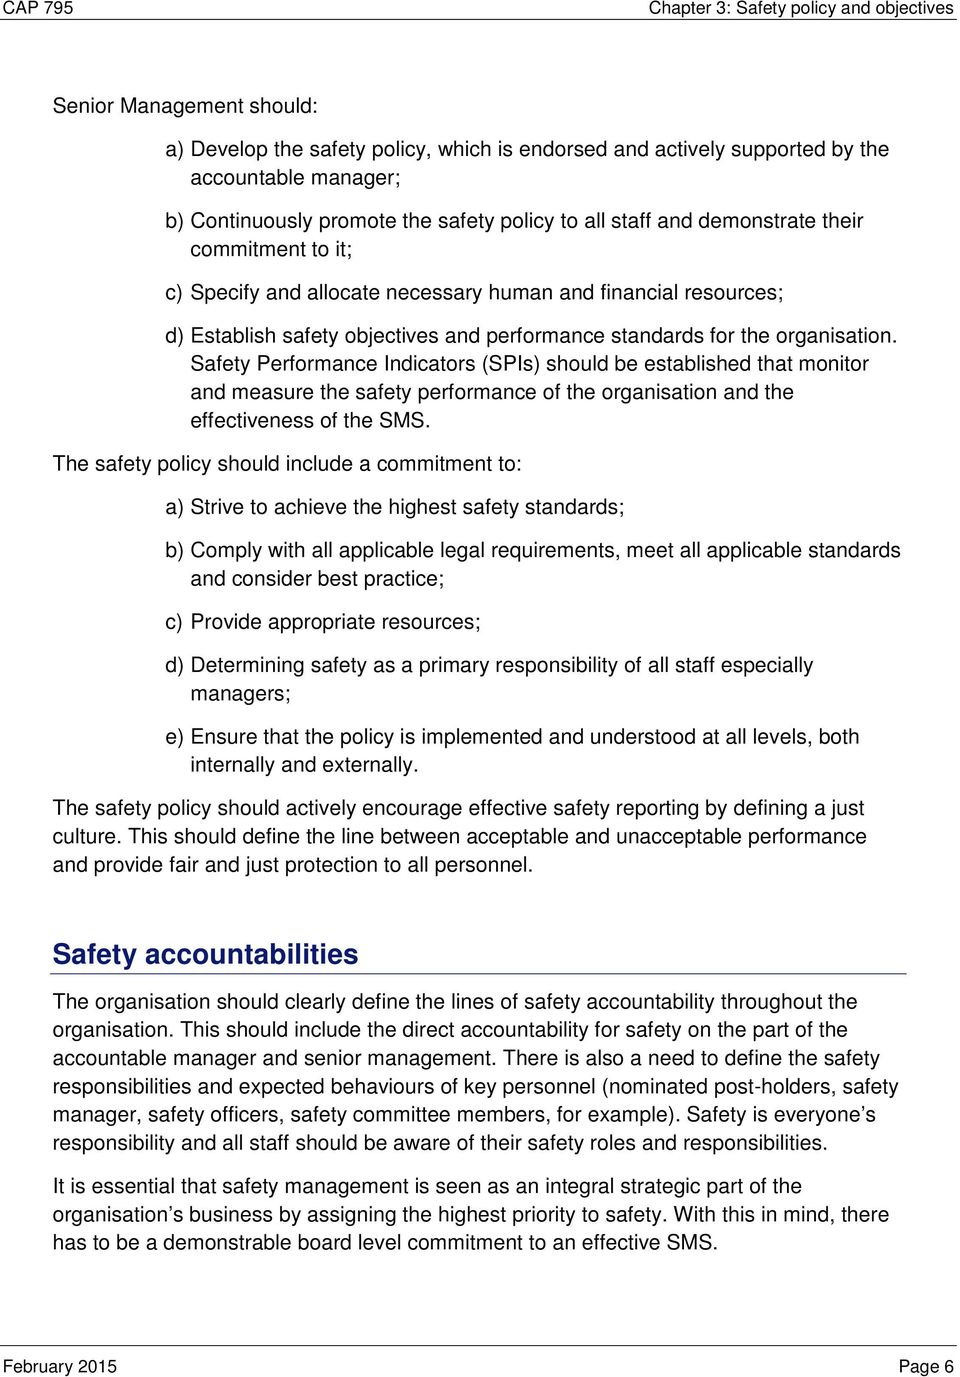 organisation. Safety Performance Indicators (SPIs) should be established that monitor and measure the safety performance of the organisation and the effectiveness of the SMS.